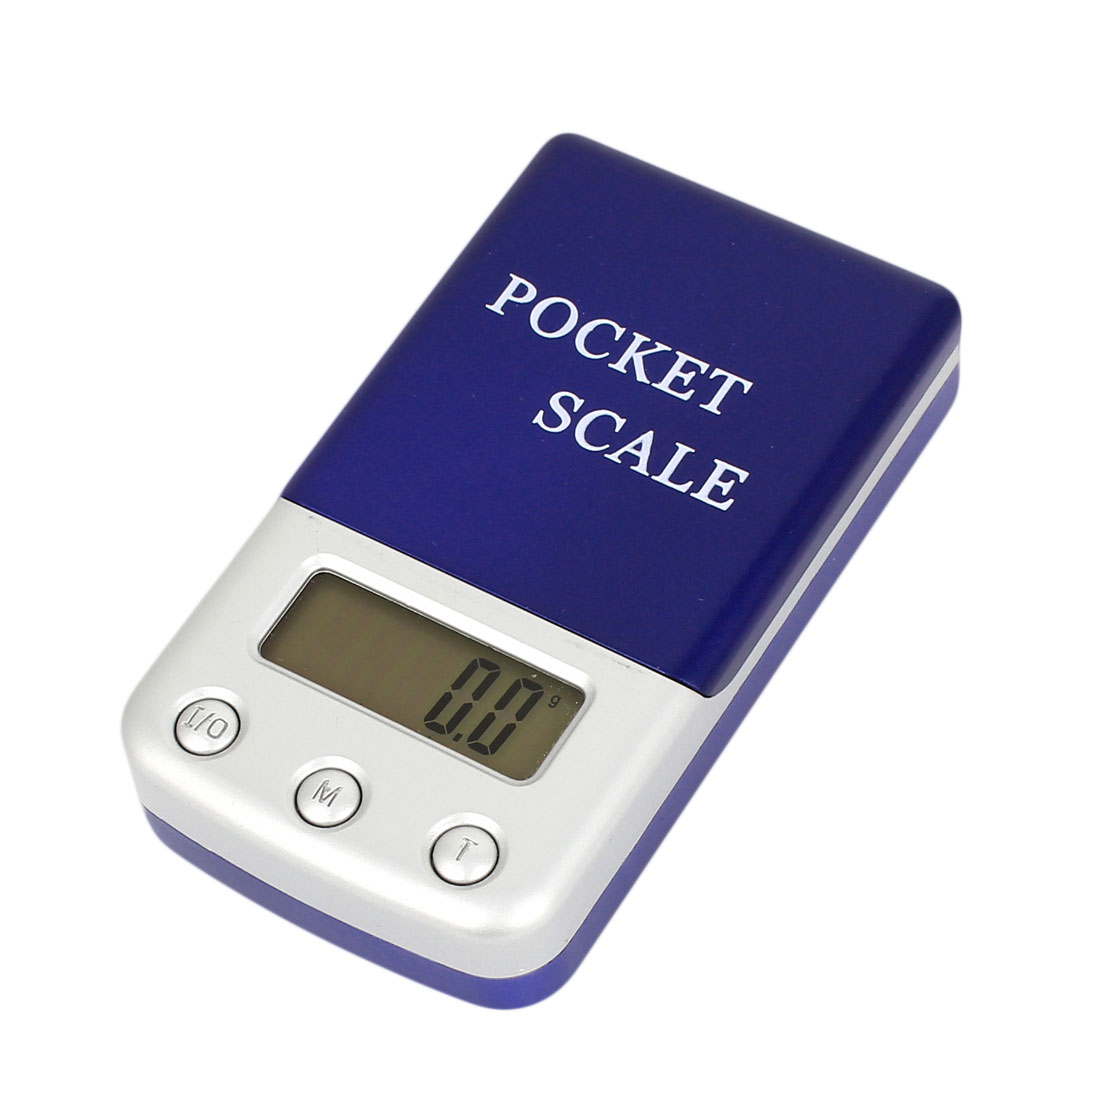 Handheld 500g x 0.1g Jewelry Weight Balance Digital Pocket Scale Dark Blue